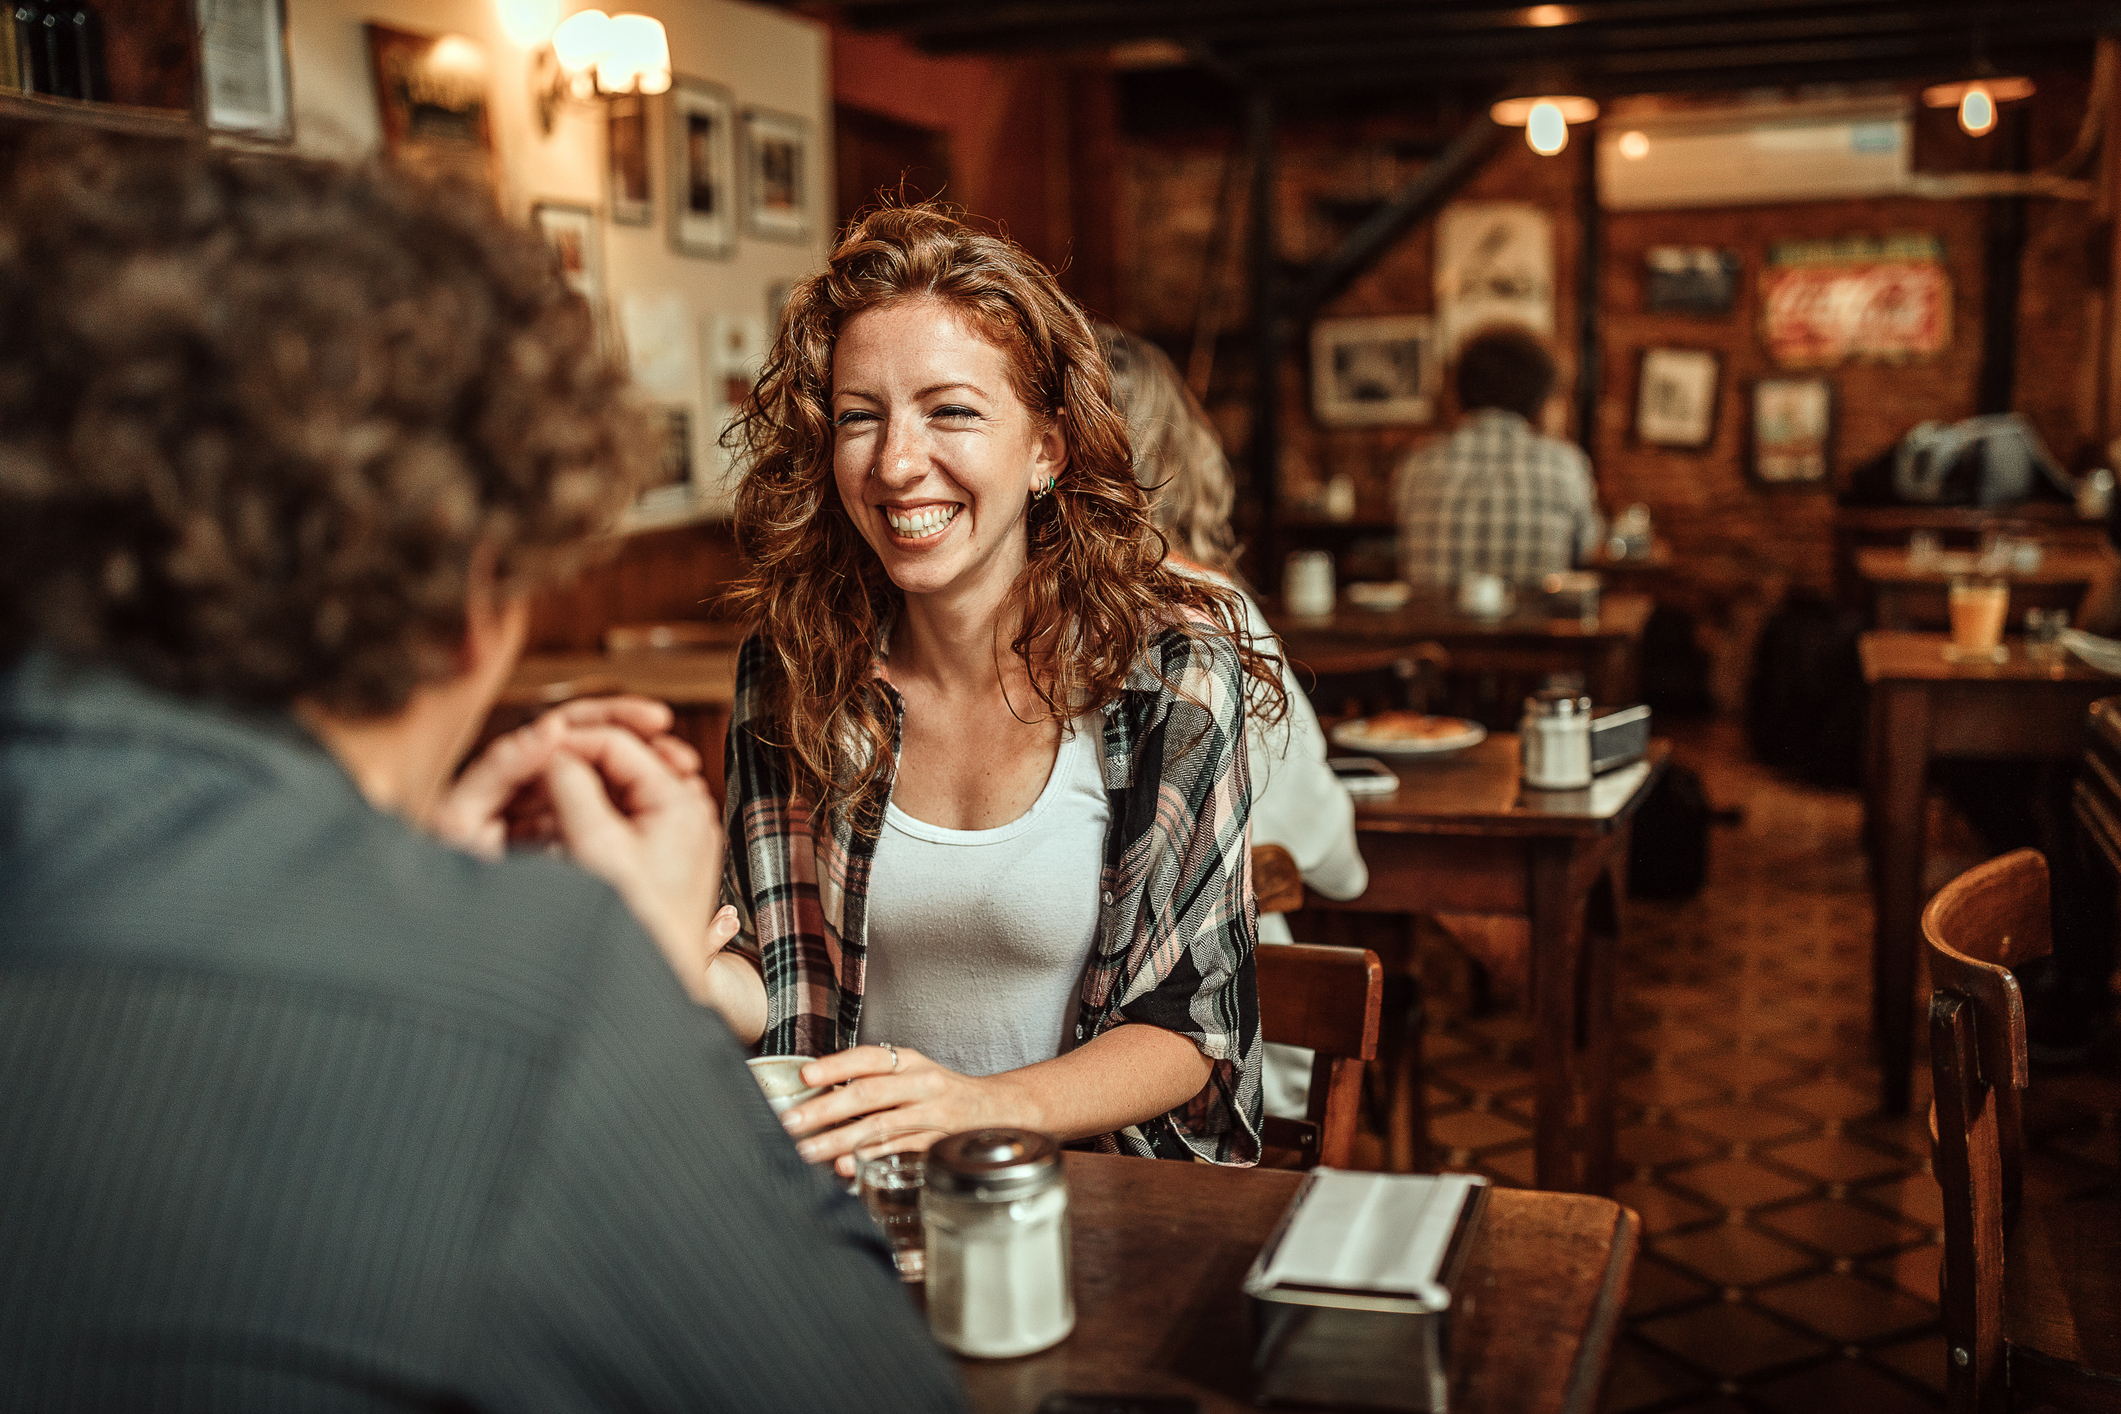 Online Dating: How To Take The Pressure Off The First Meetup Or Date After Prolonged Texting?